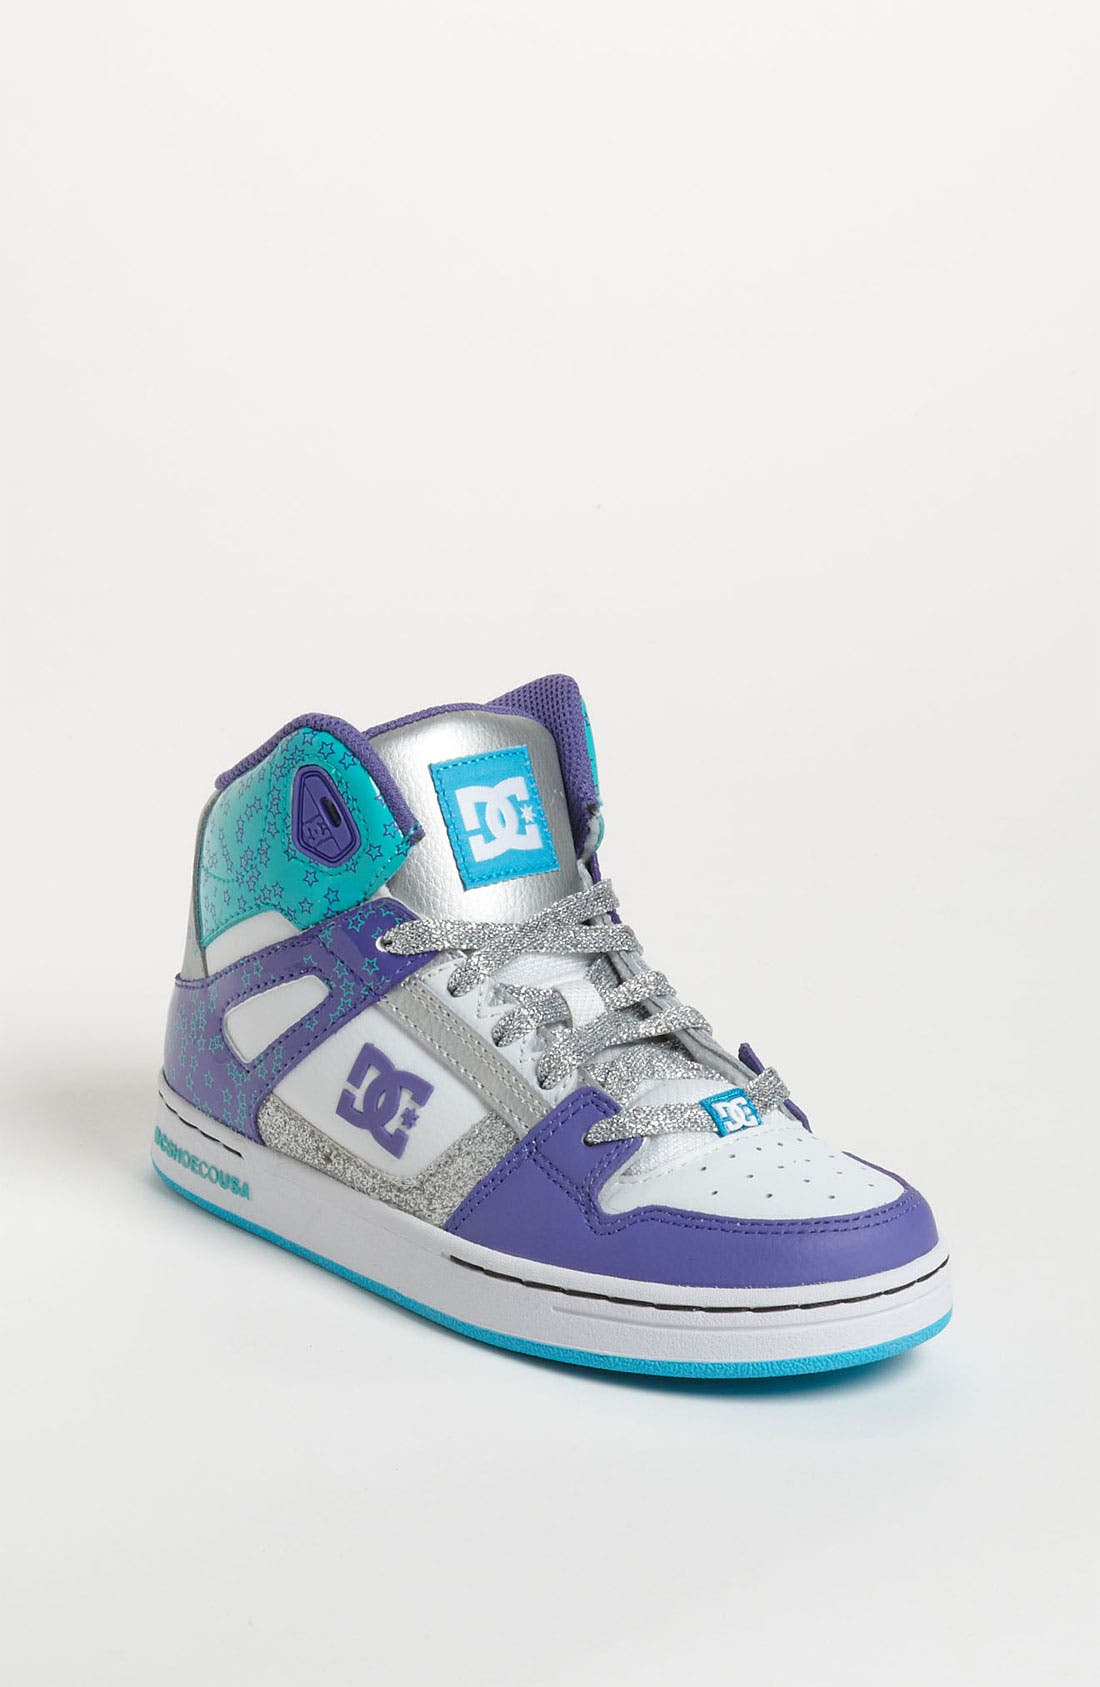 Main Image - DC Shoes 'Rebound' Skate Shoe (Toddler, Little Kid & Big Kid)